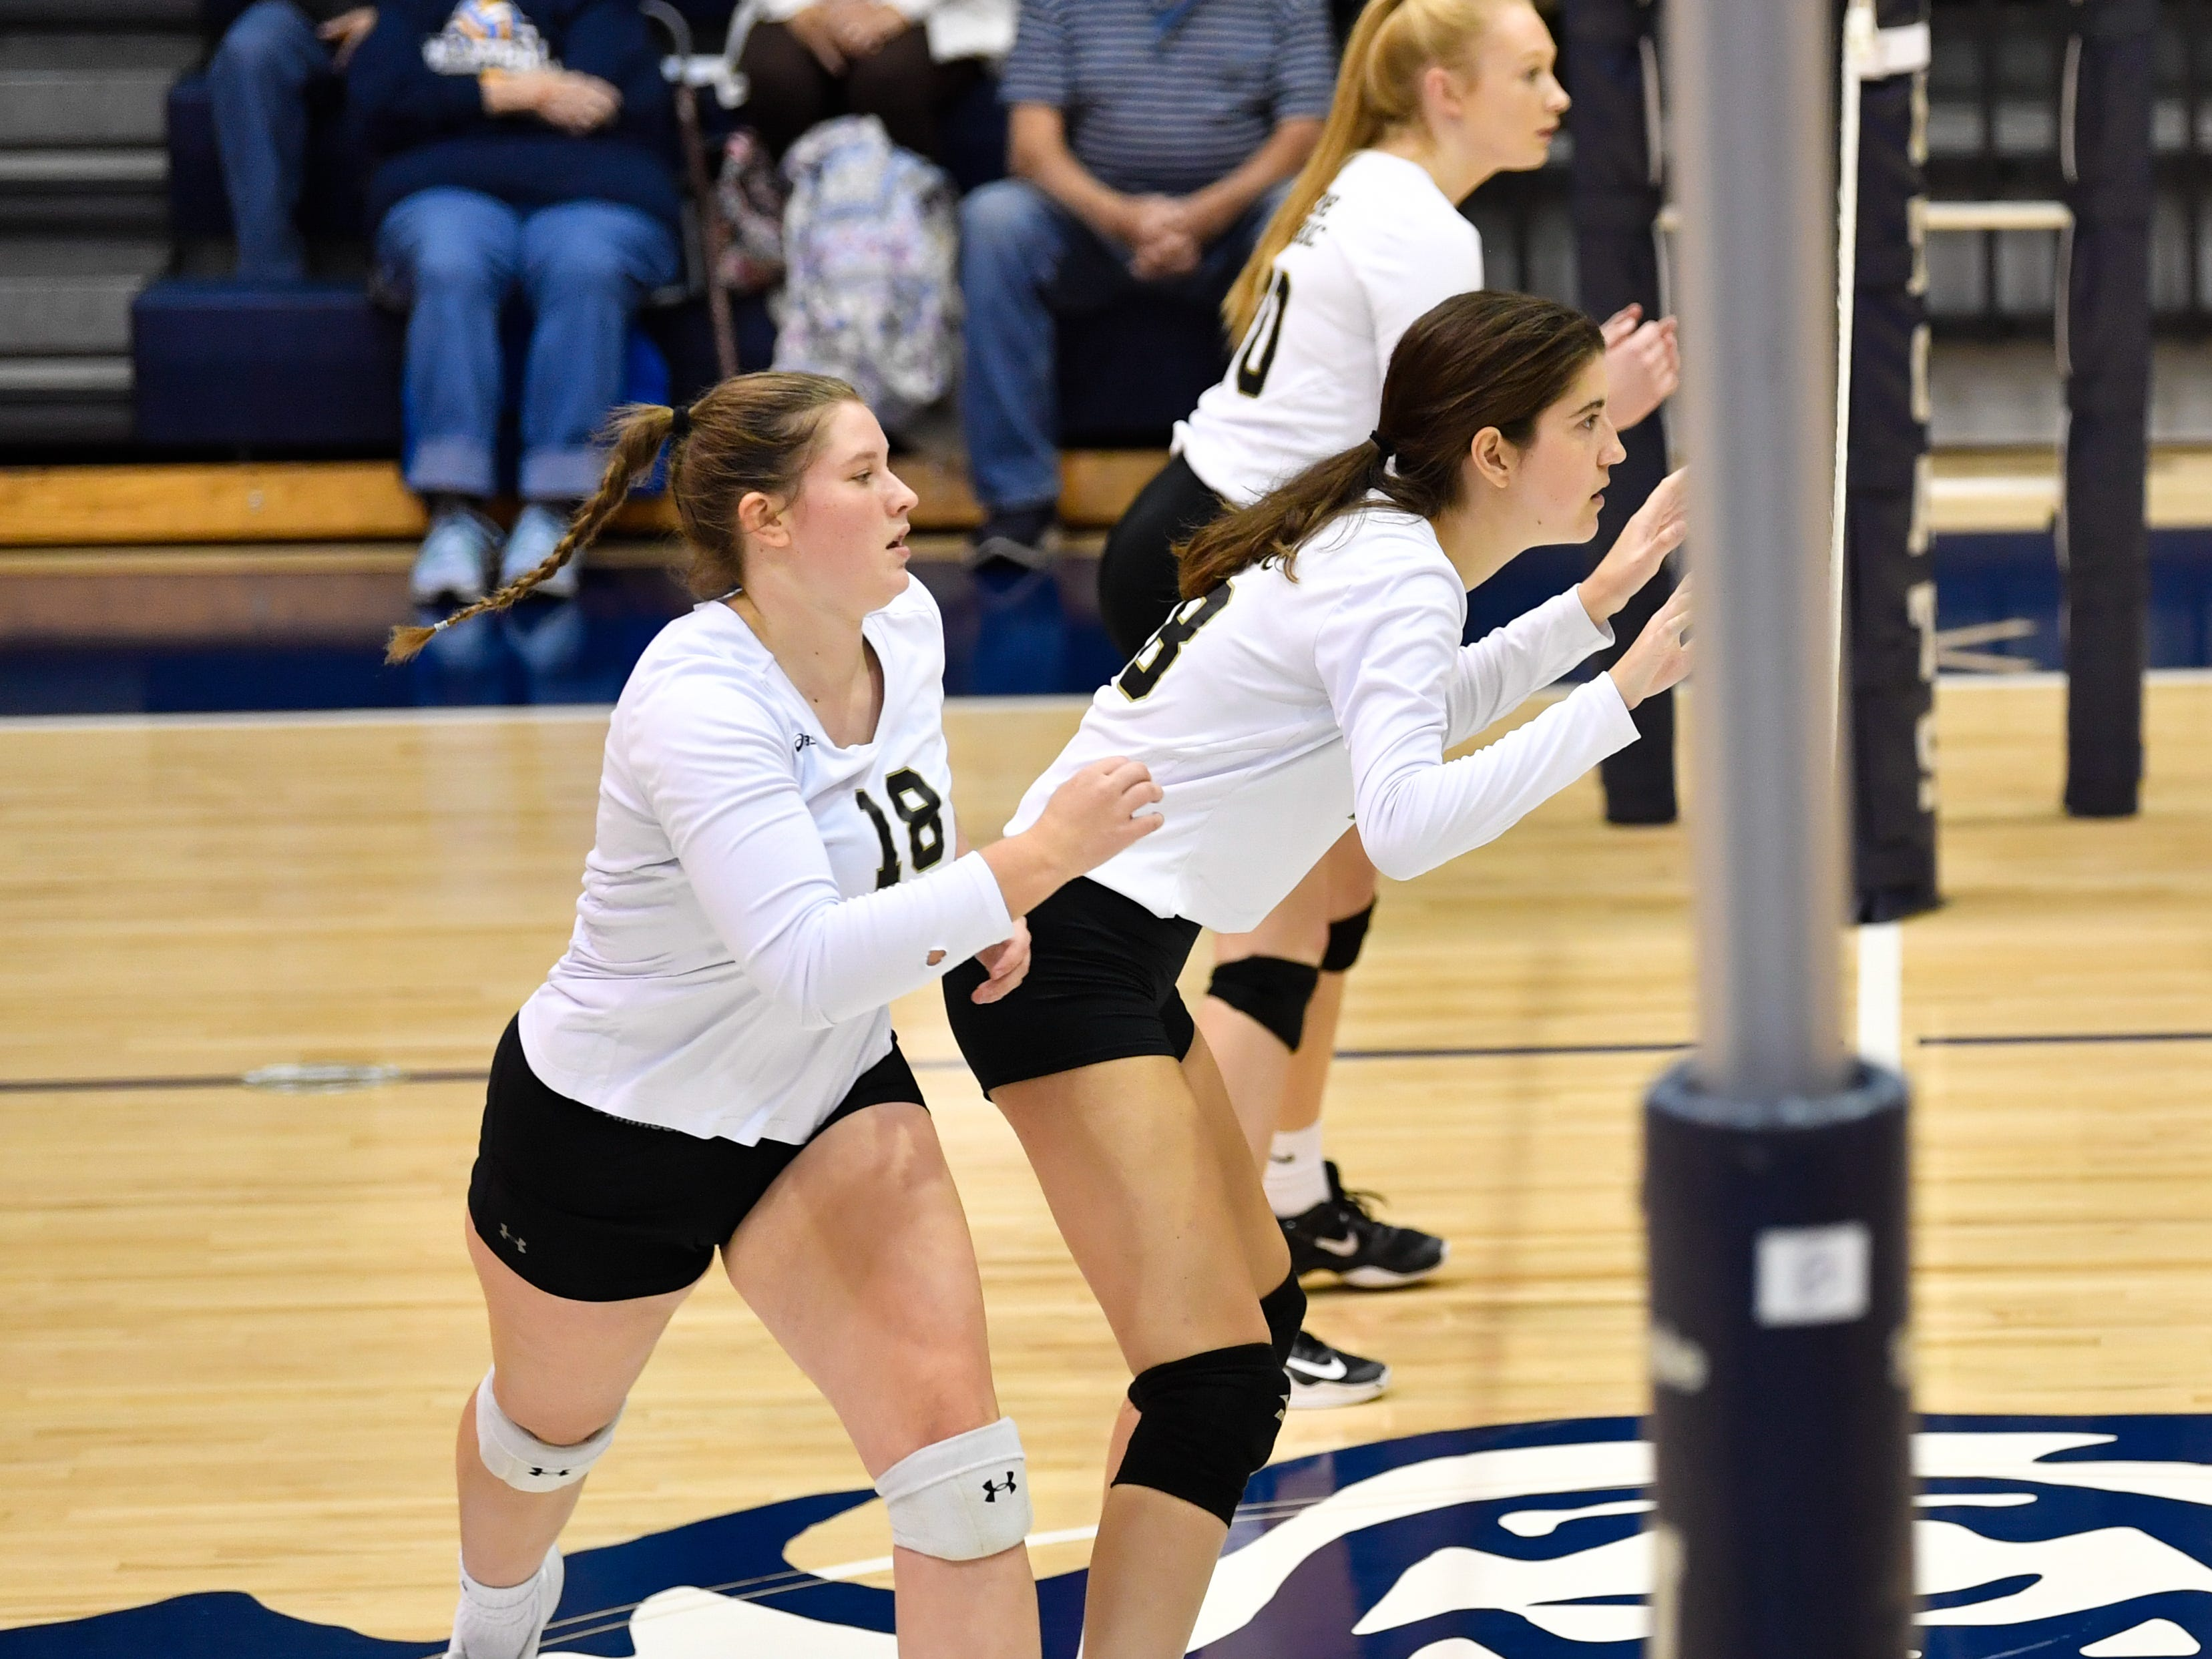 Delone Catholic is prepares to block a spike during the YAIAA league volleyball tournament semifinals between Eastern York and Delone Catholic, Tuesday, October 23, 2018. The Squirettes defeated the Golden Knights 3-2.